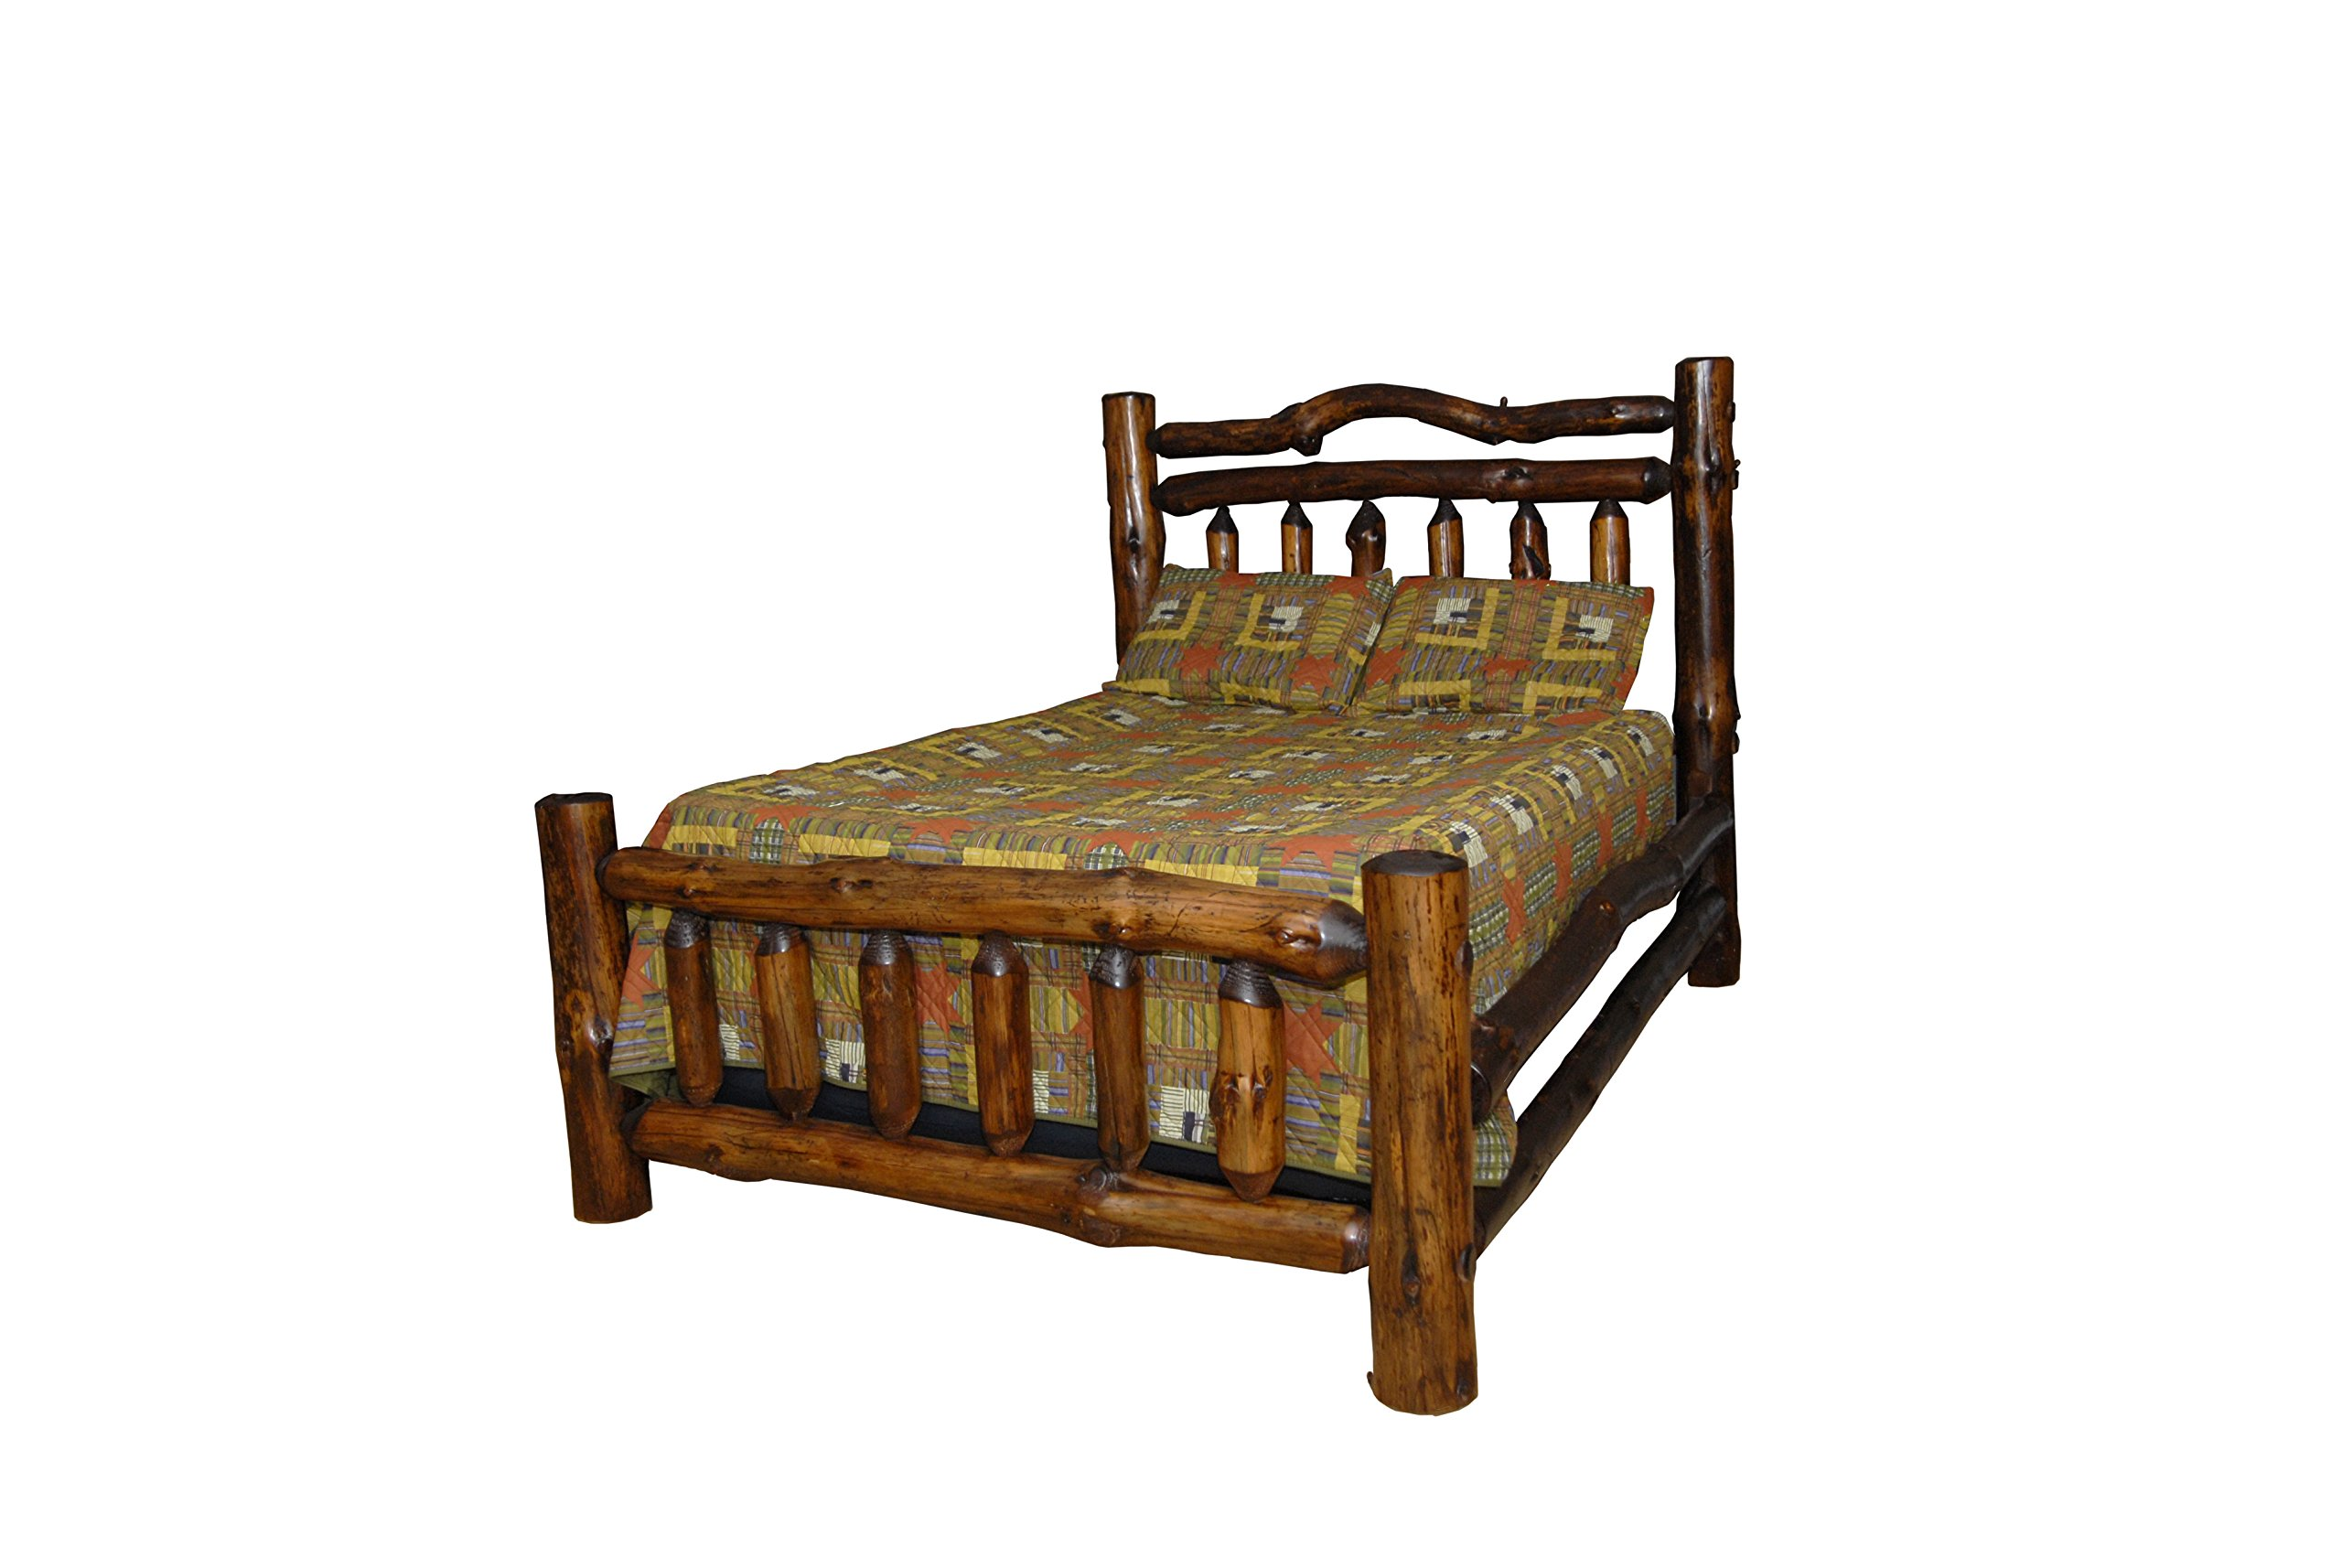 Bedroom Furniture -  -  - 818MJg DVQL -